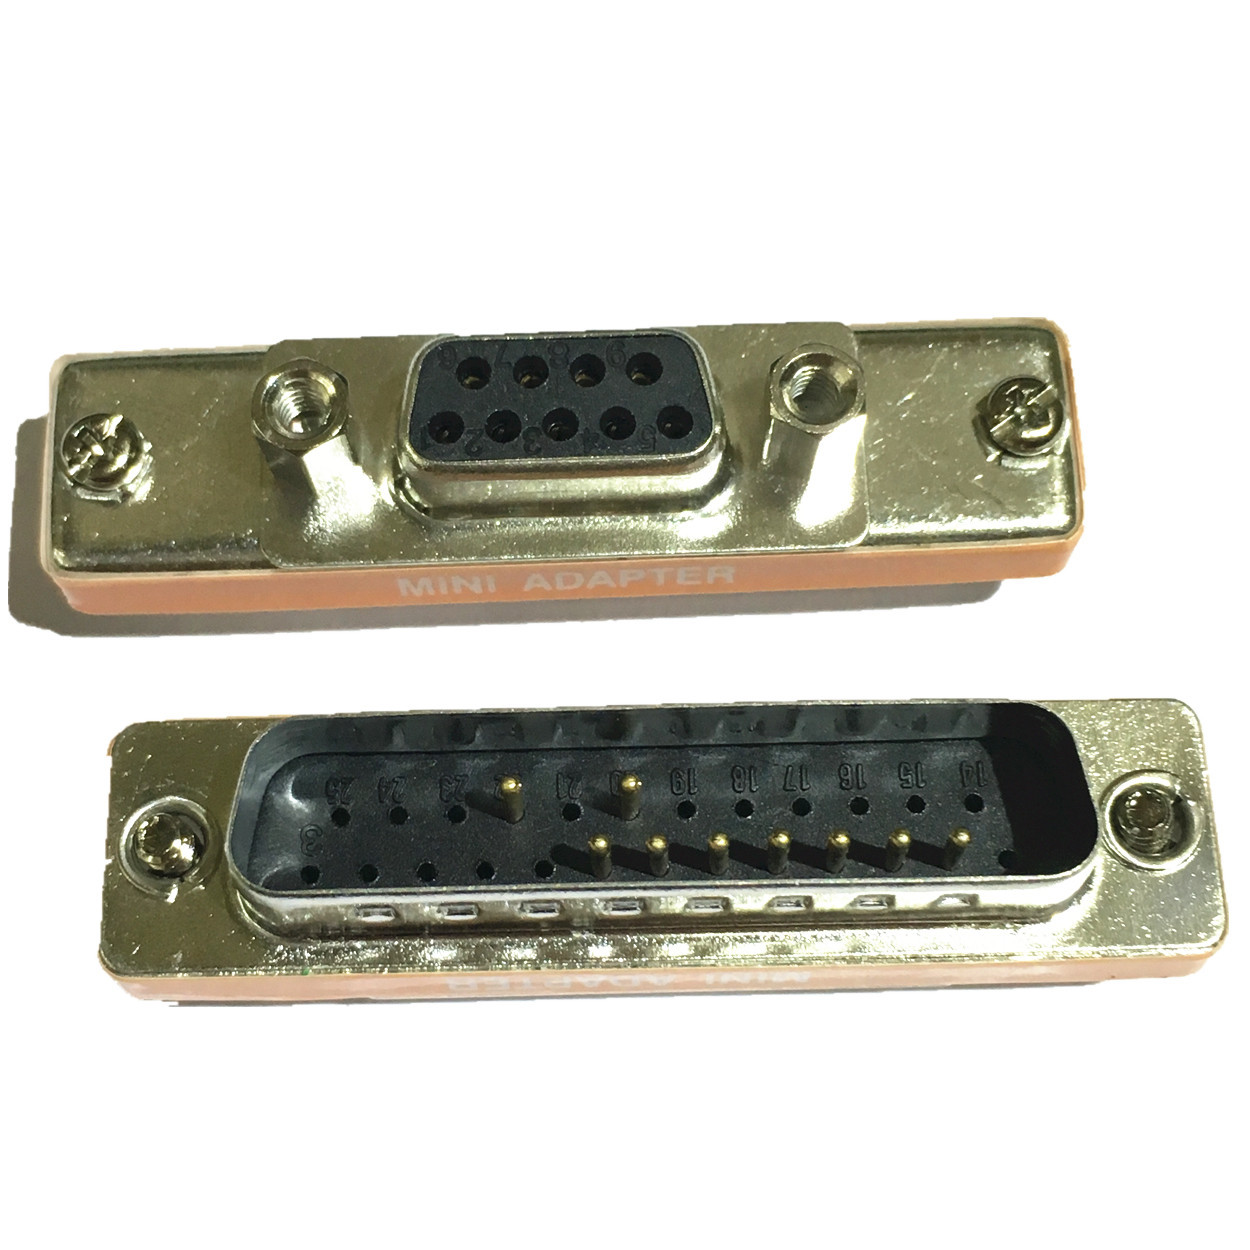 DB9 female DB25 male 9P female 25P male RS232 connector D9